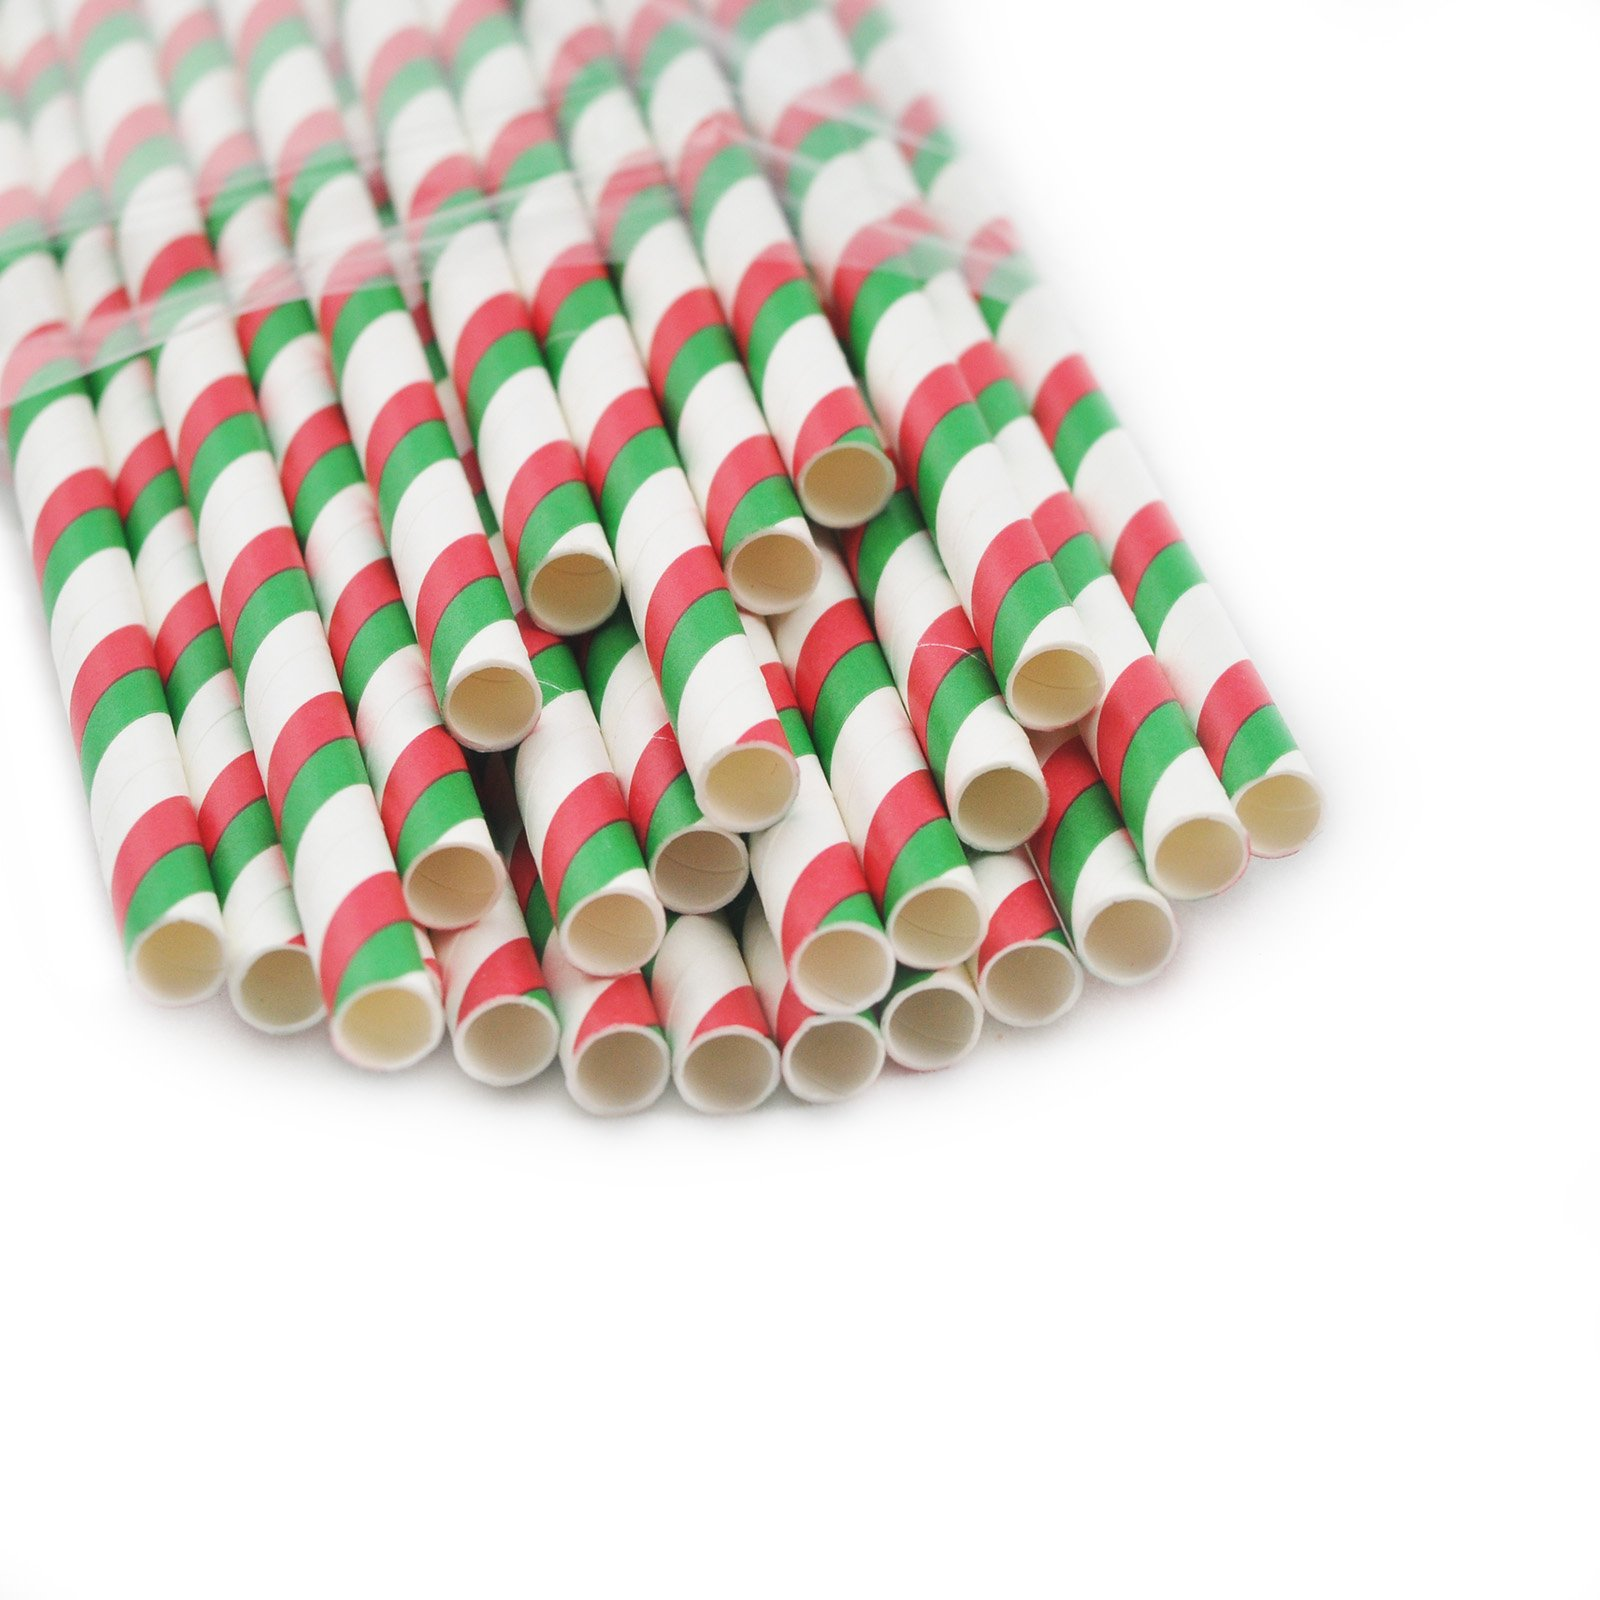 Striped Paper Drinking Straws for Party Table Decoretions- Red and Green Double Stripes 25PCS/ Bag